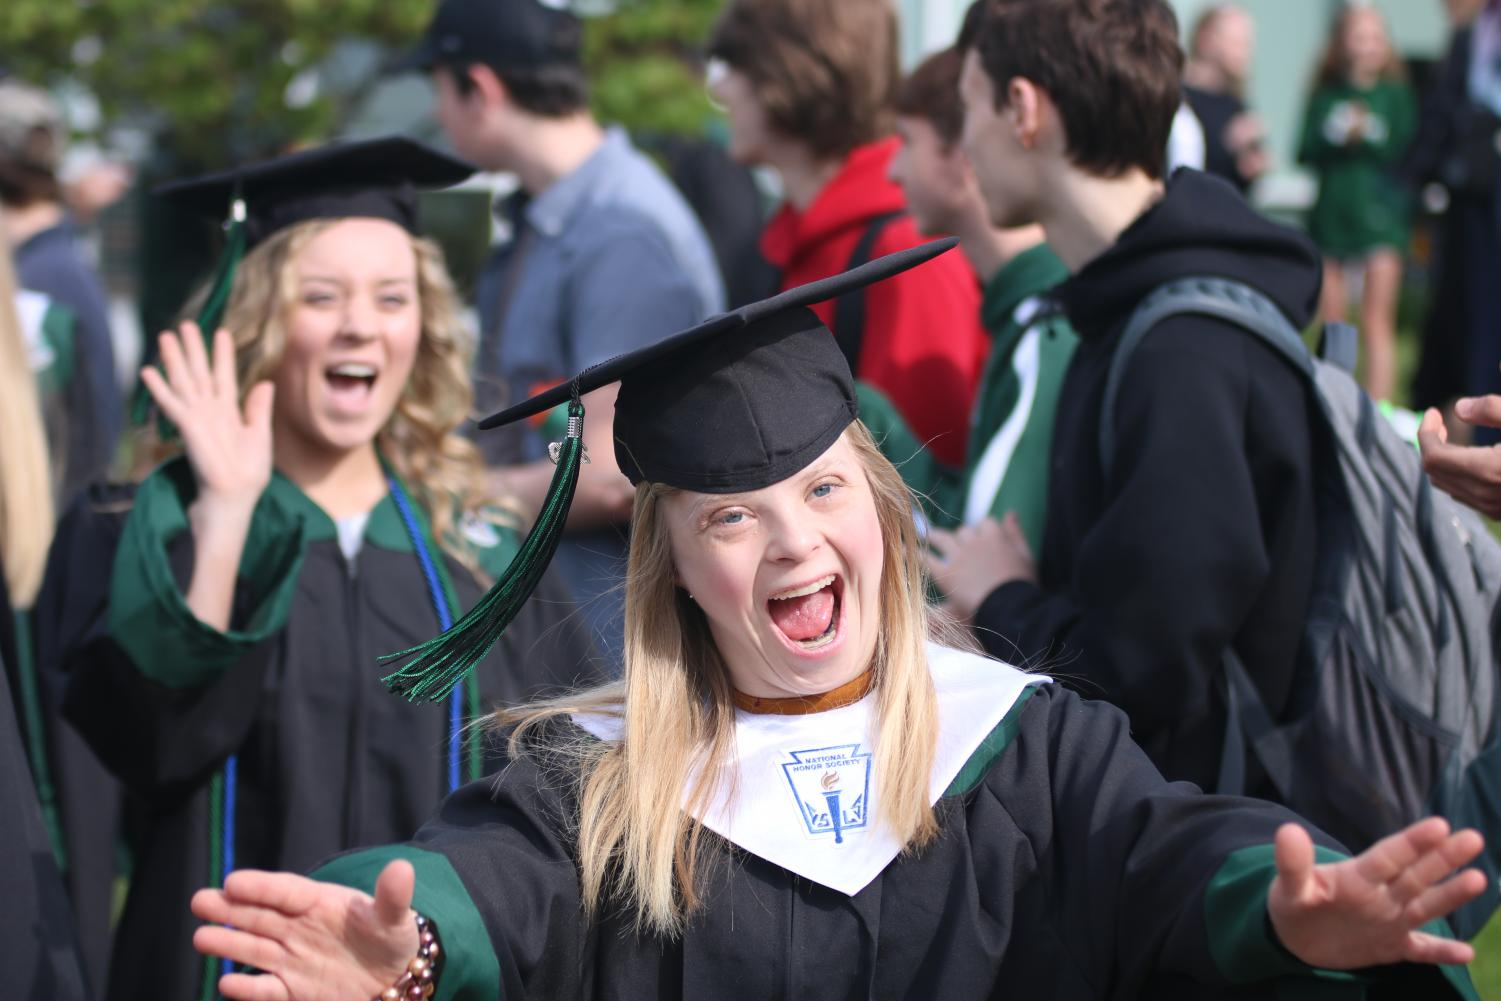 Smiling to her friends, senior Violet Holman finishes the tradition of walking through courtyard.